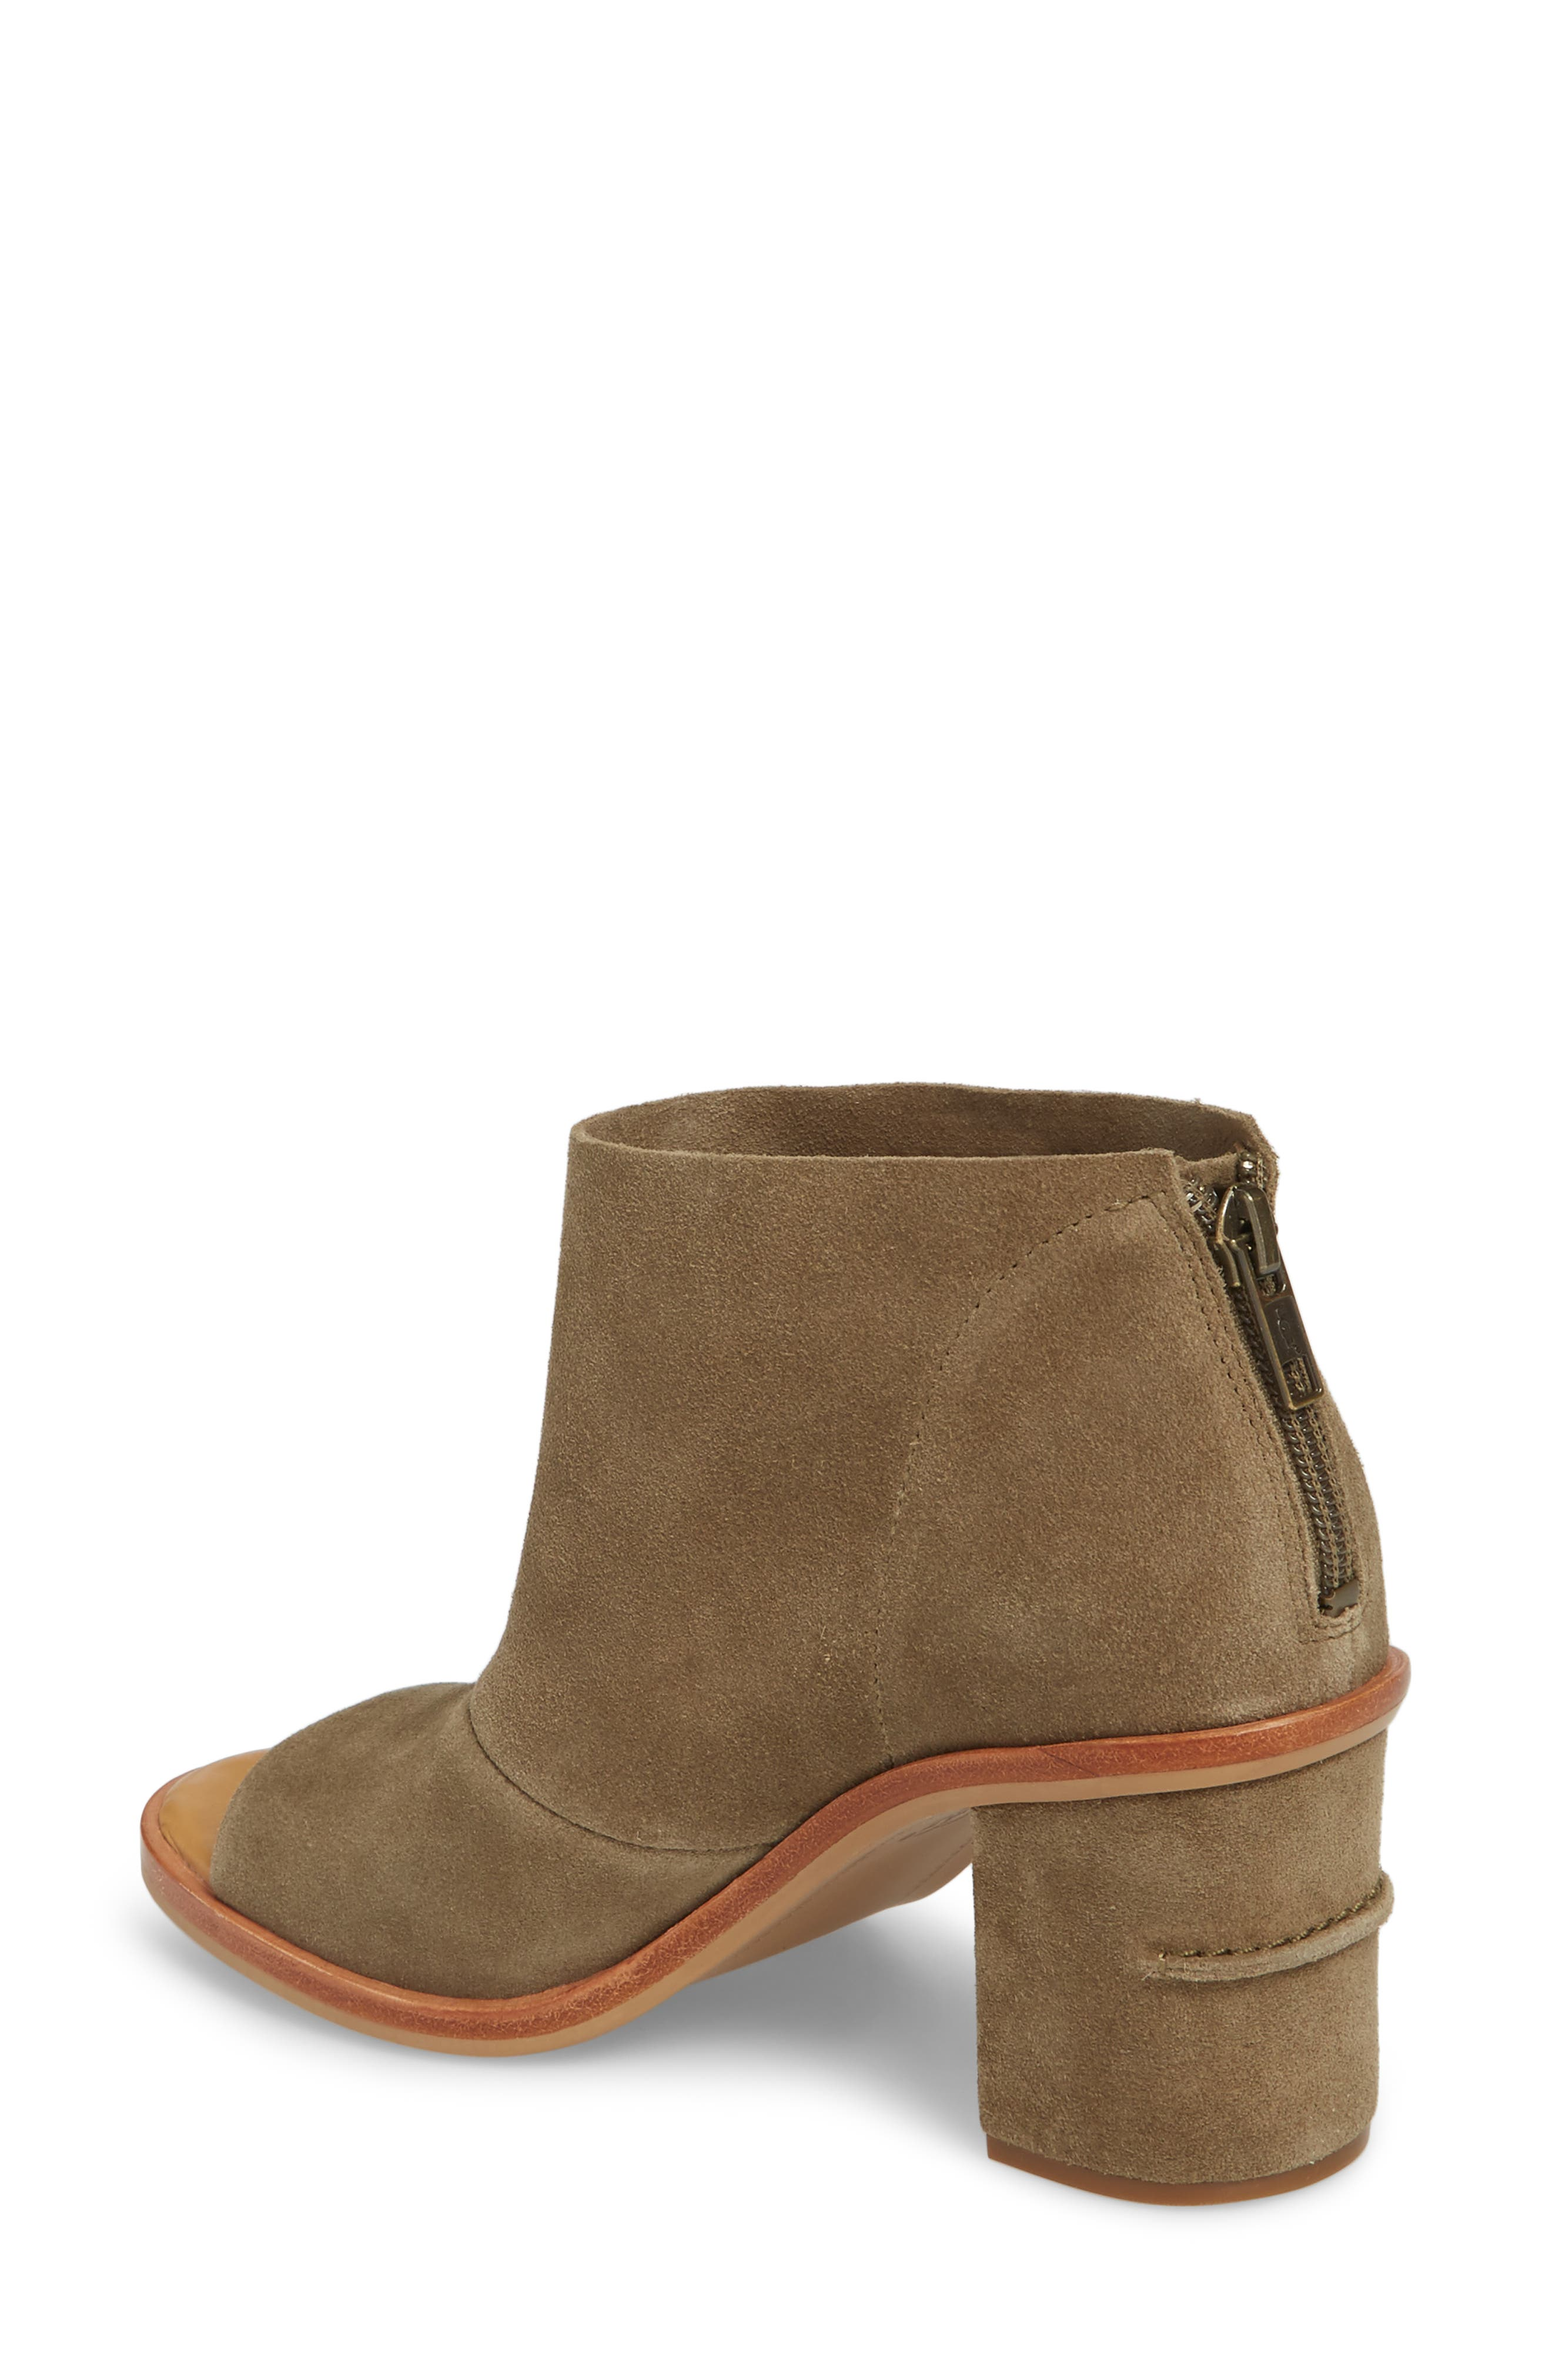 a8641ae9485 Ugg Ginger Peep Toe Bootie, Apple Green Suede